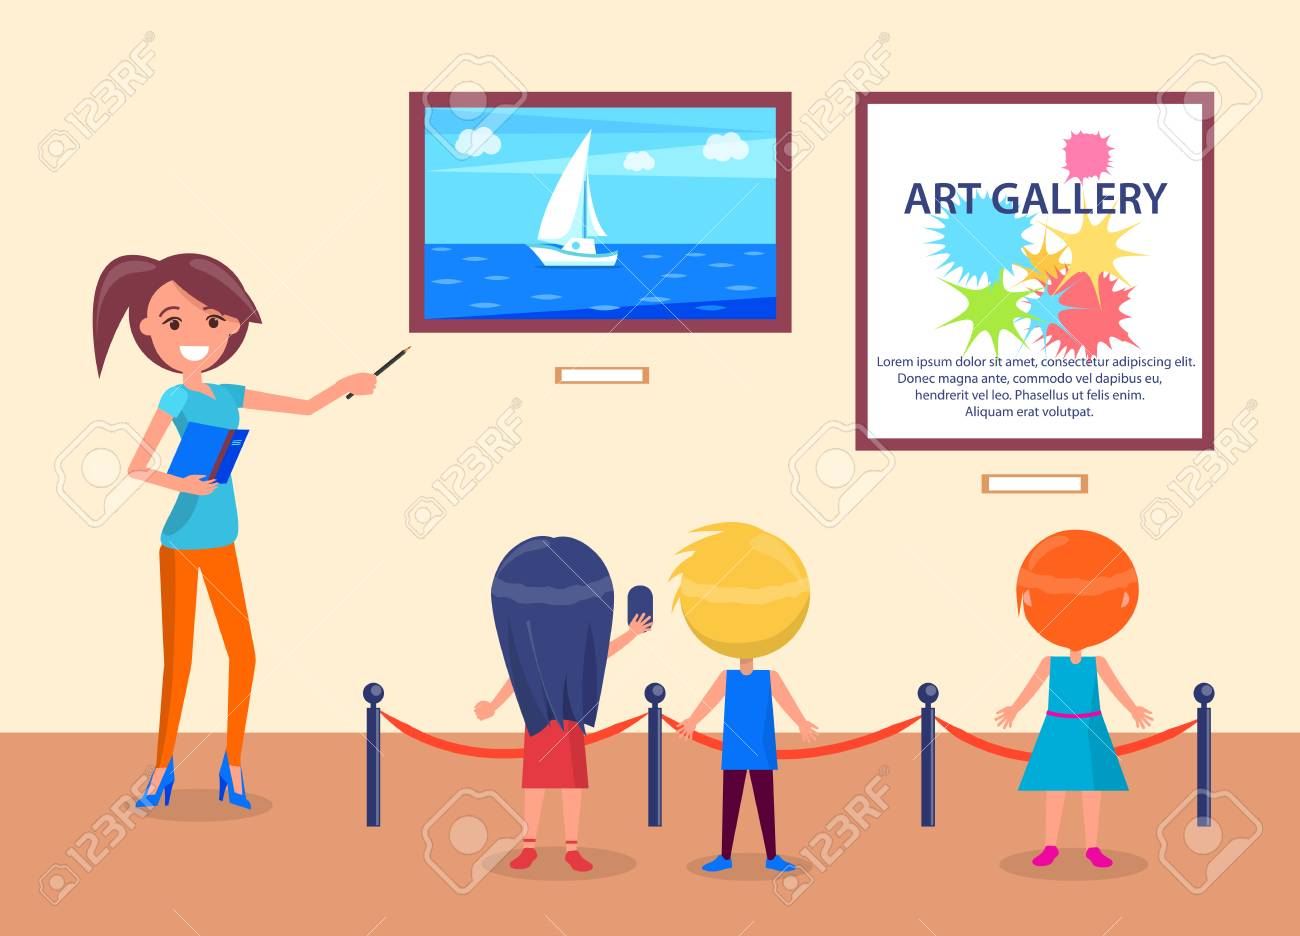 Art gallery excursion for school kids back view with guide. Woman pointing on sea with sailboat, children listen attentively to teacher vector illustration - 93701477